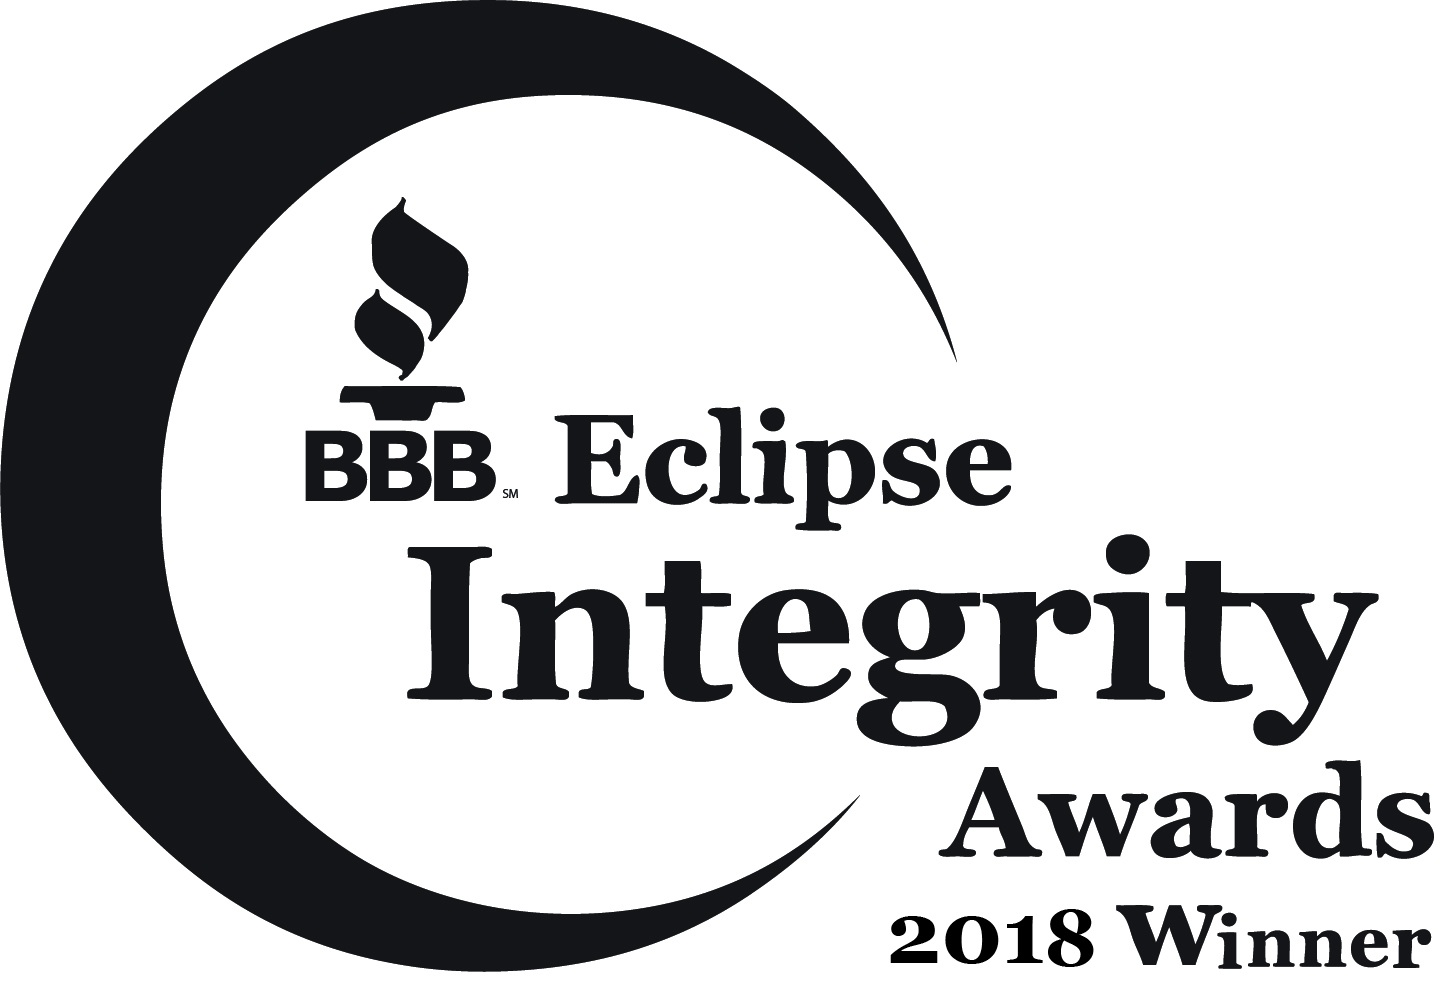 Better Business Bureau's Eclipse Integrity Awards 2018 Winner